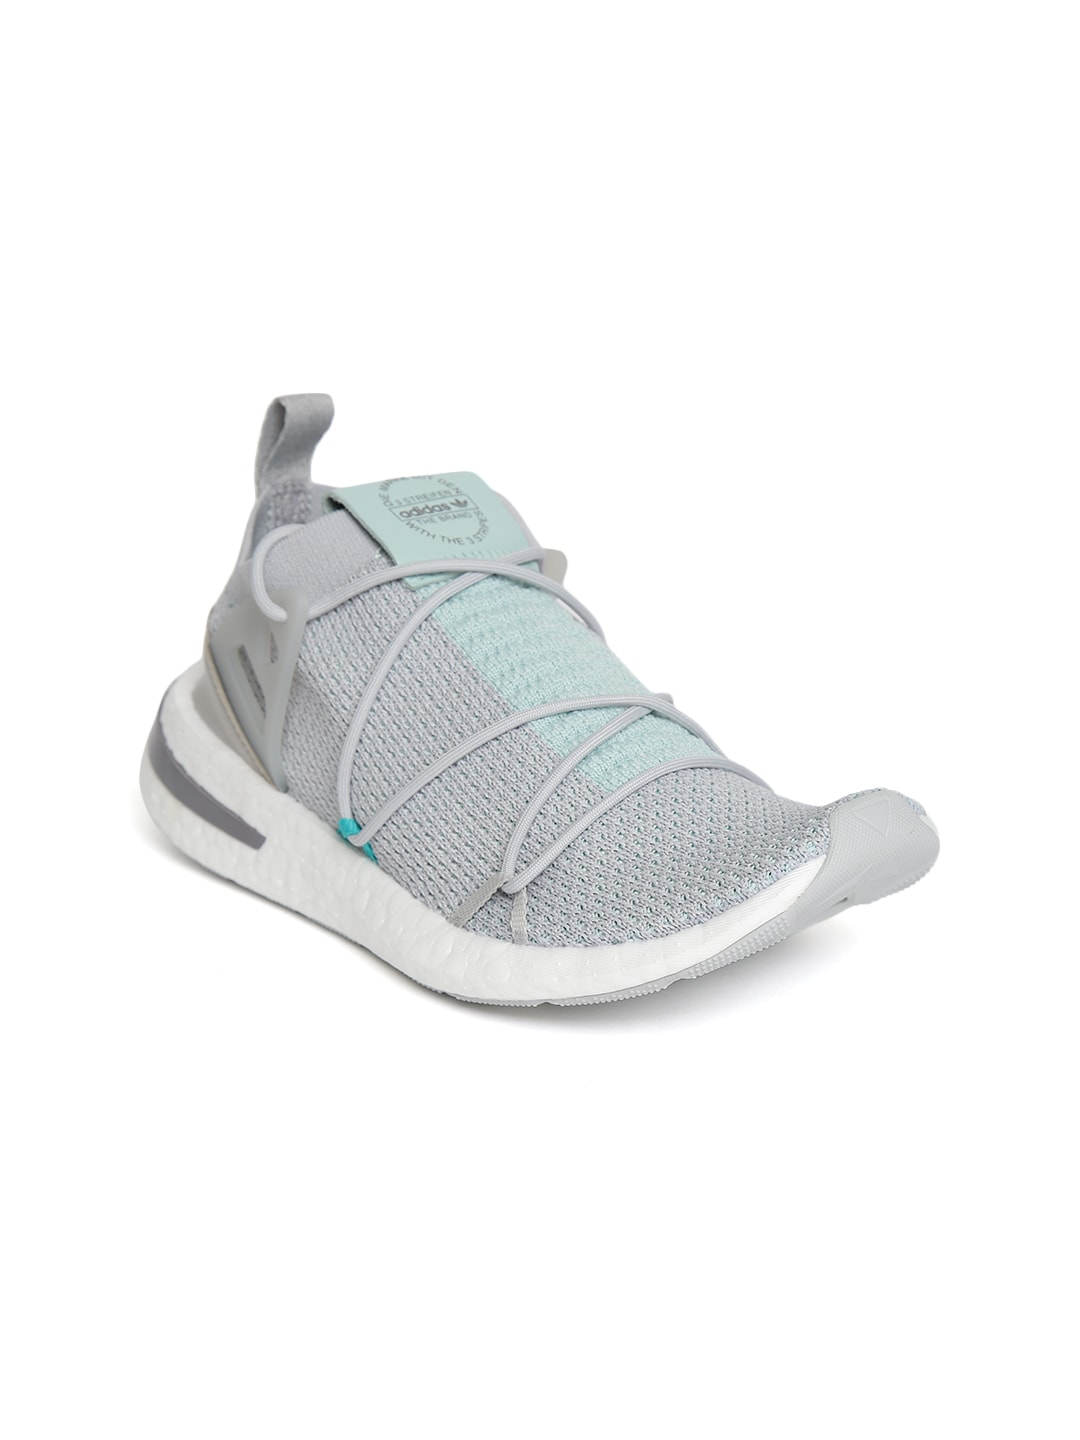 e1a92d0629ad Adidas Edition - Buy Adidas Edition online in India